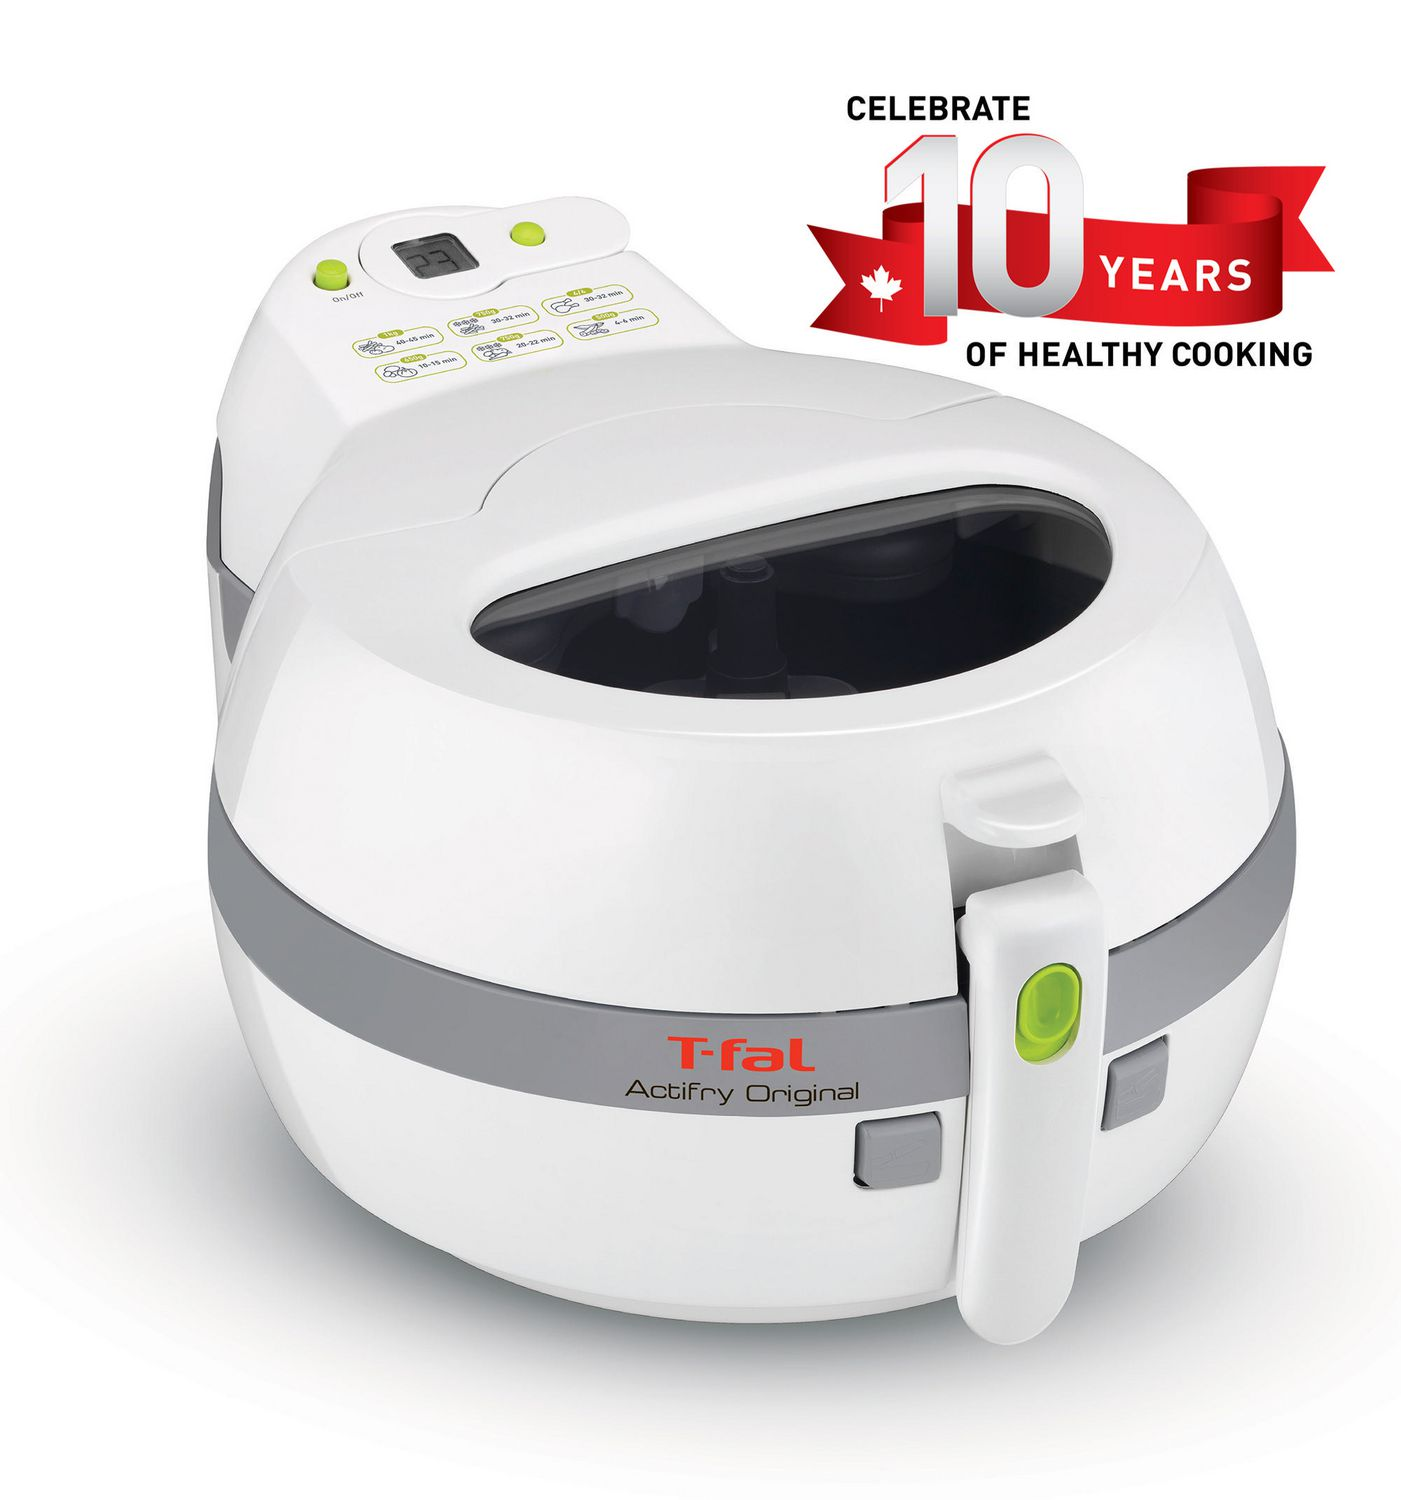 T Fal Actifry Original 1kg Air Fryer With Timer